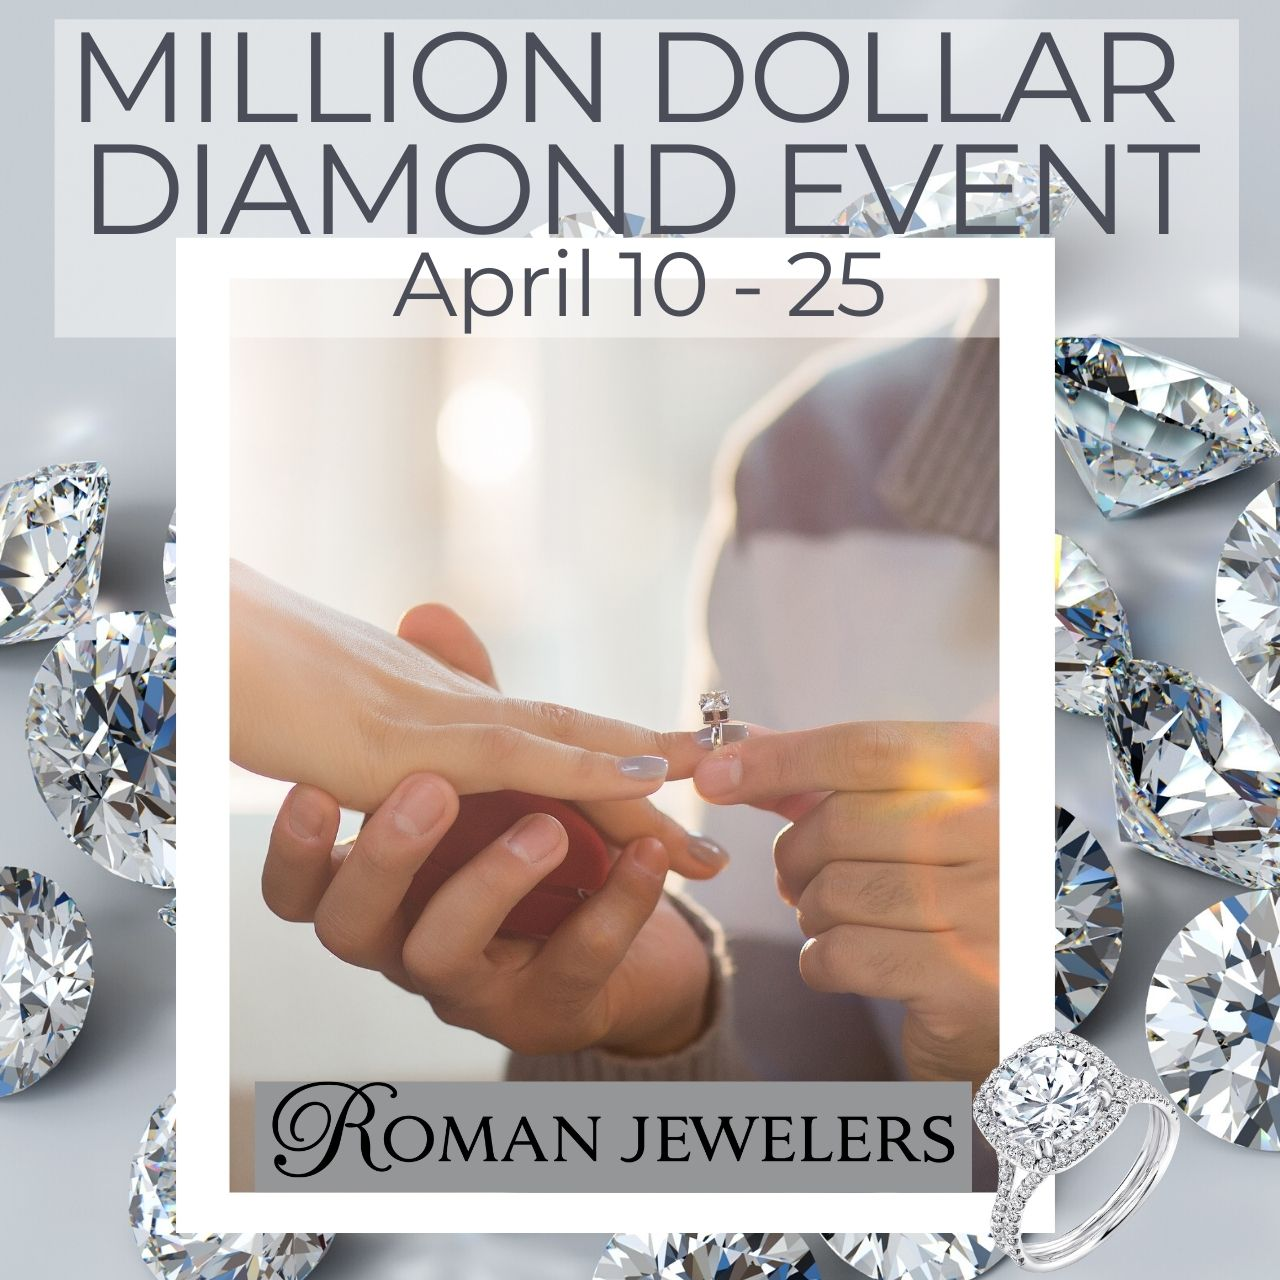 Million Dollar Diamond Event